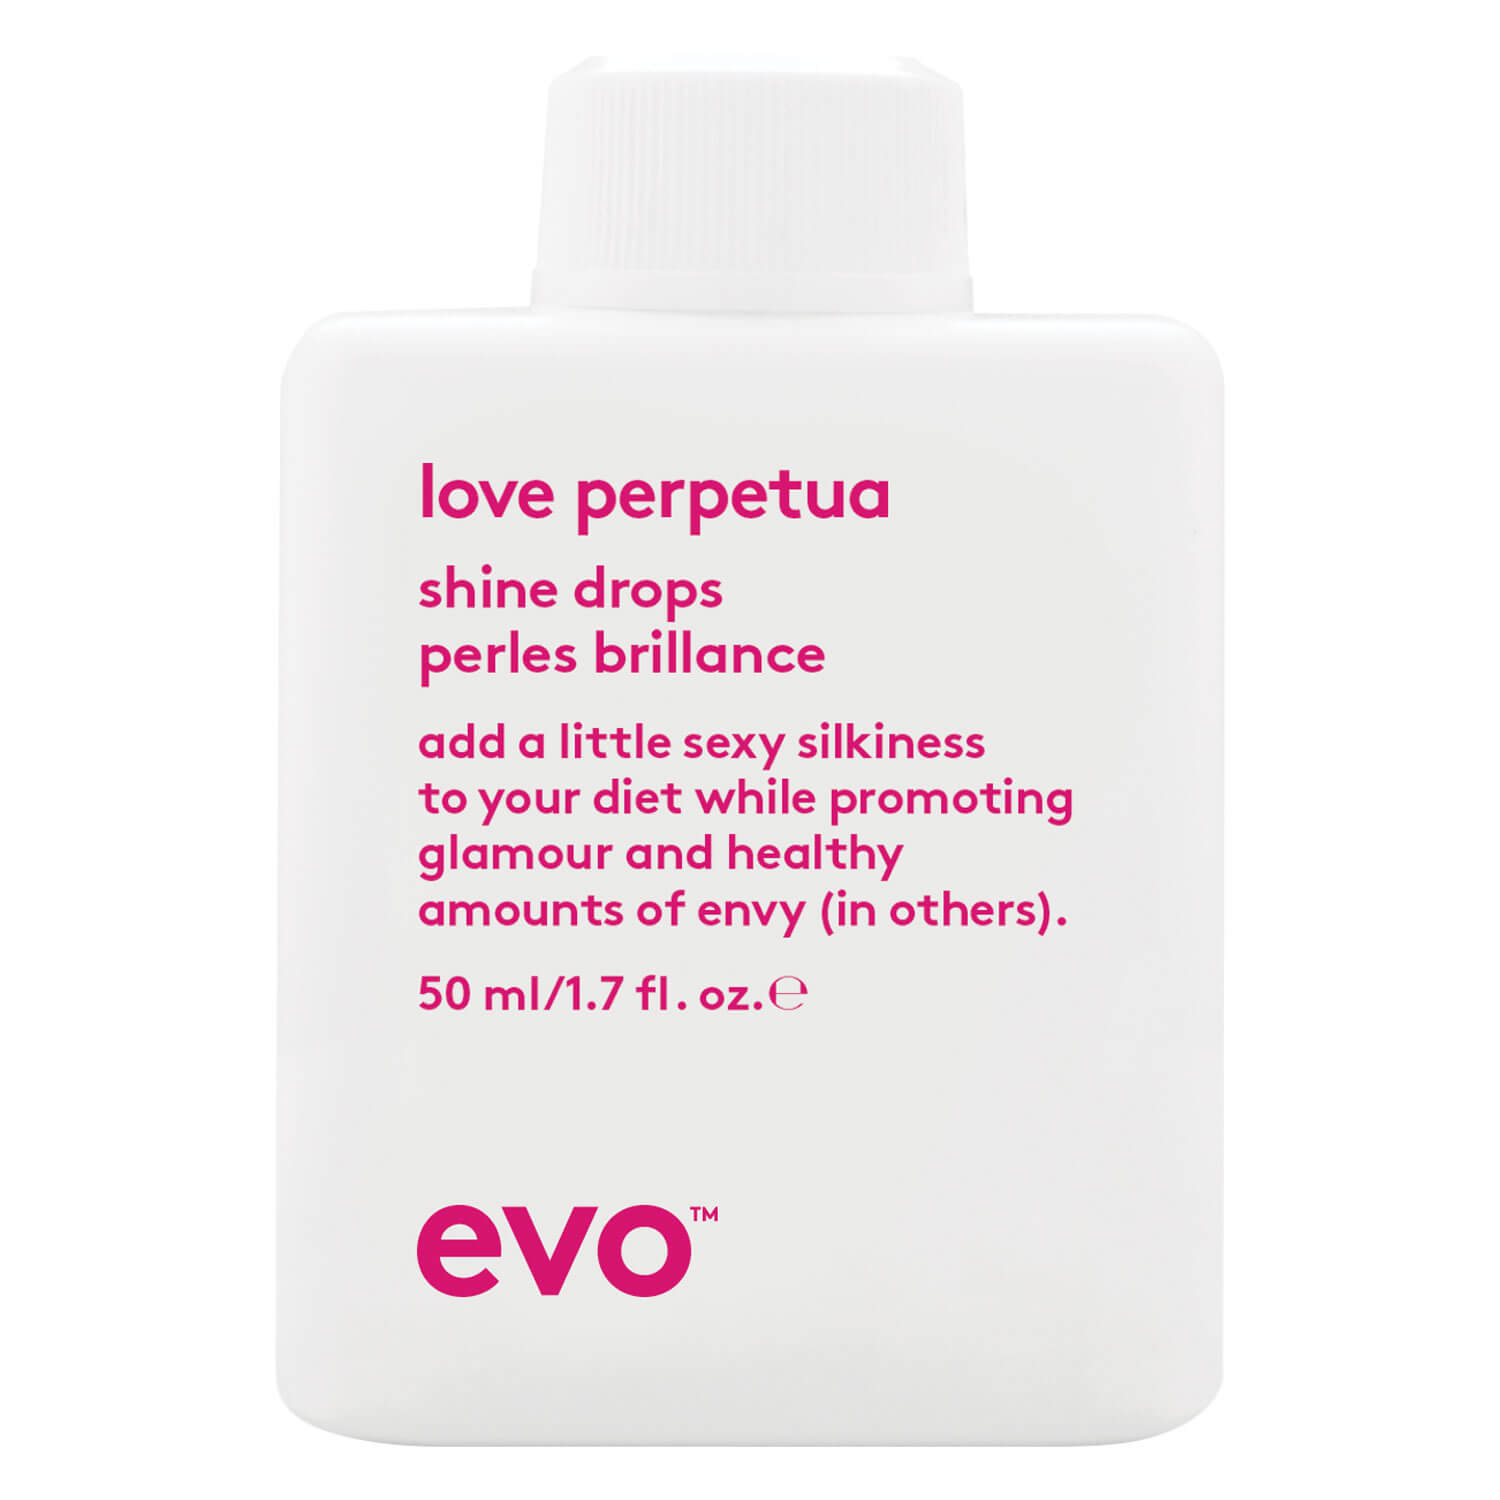 evo smooth - love perpetua shine drops